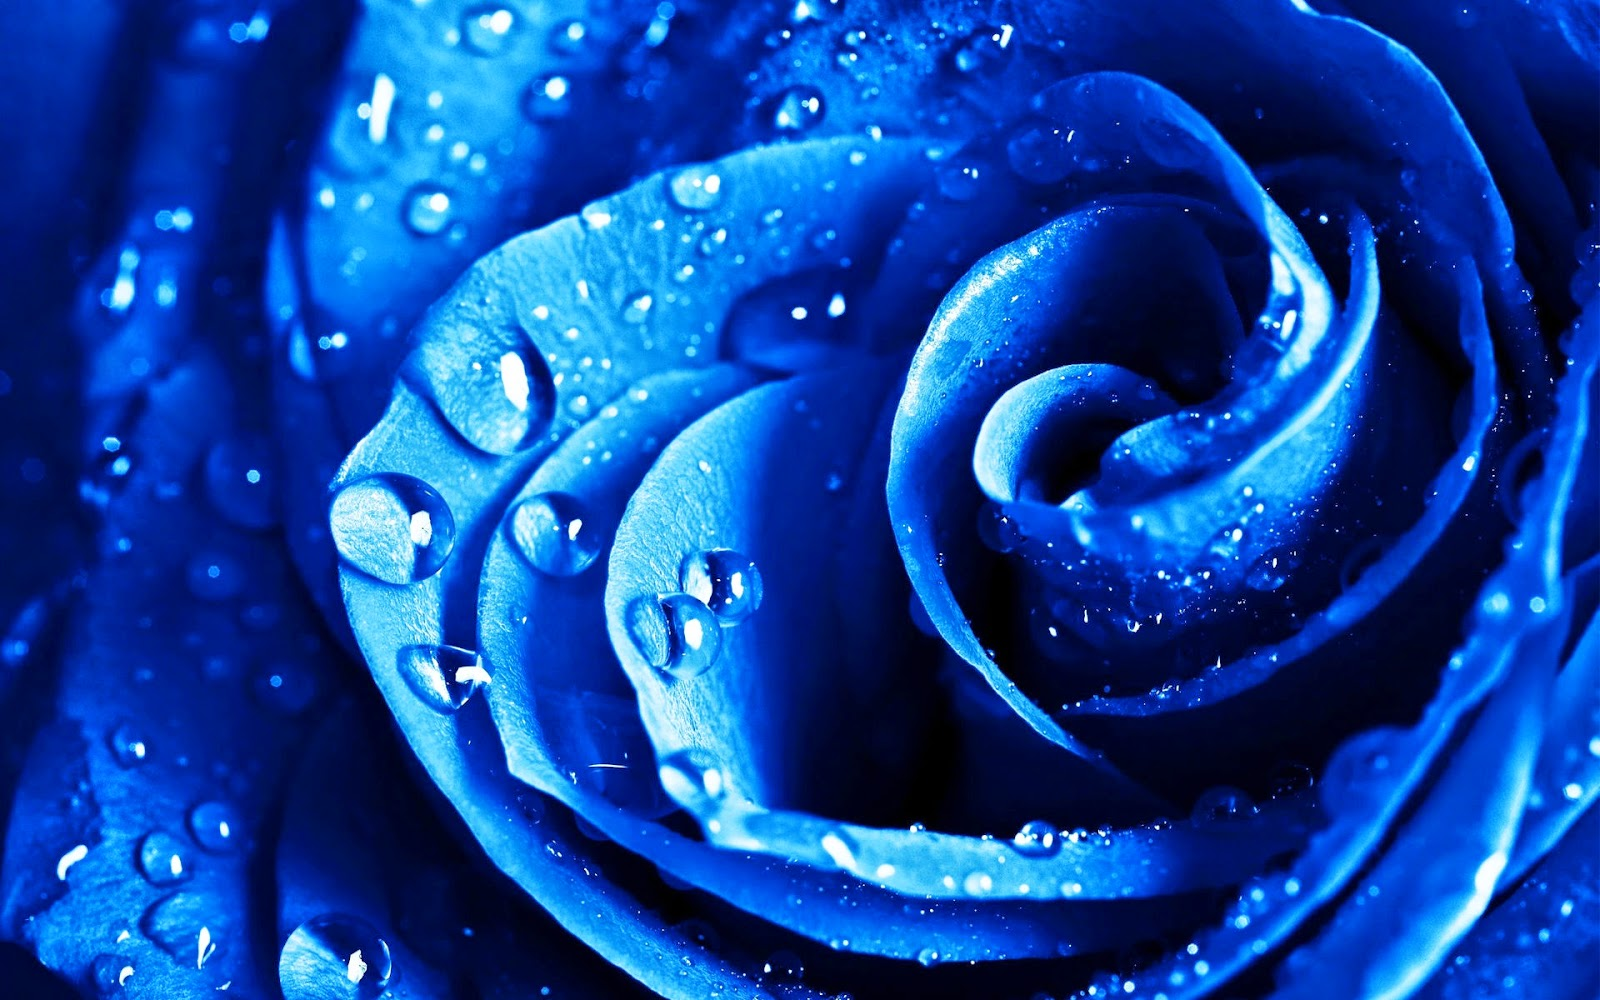 blue-roses-to-of-dew-hdlovewallpaper